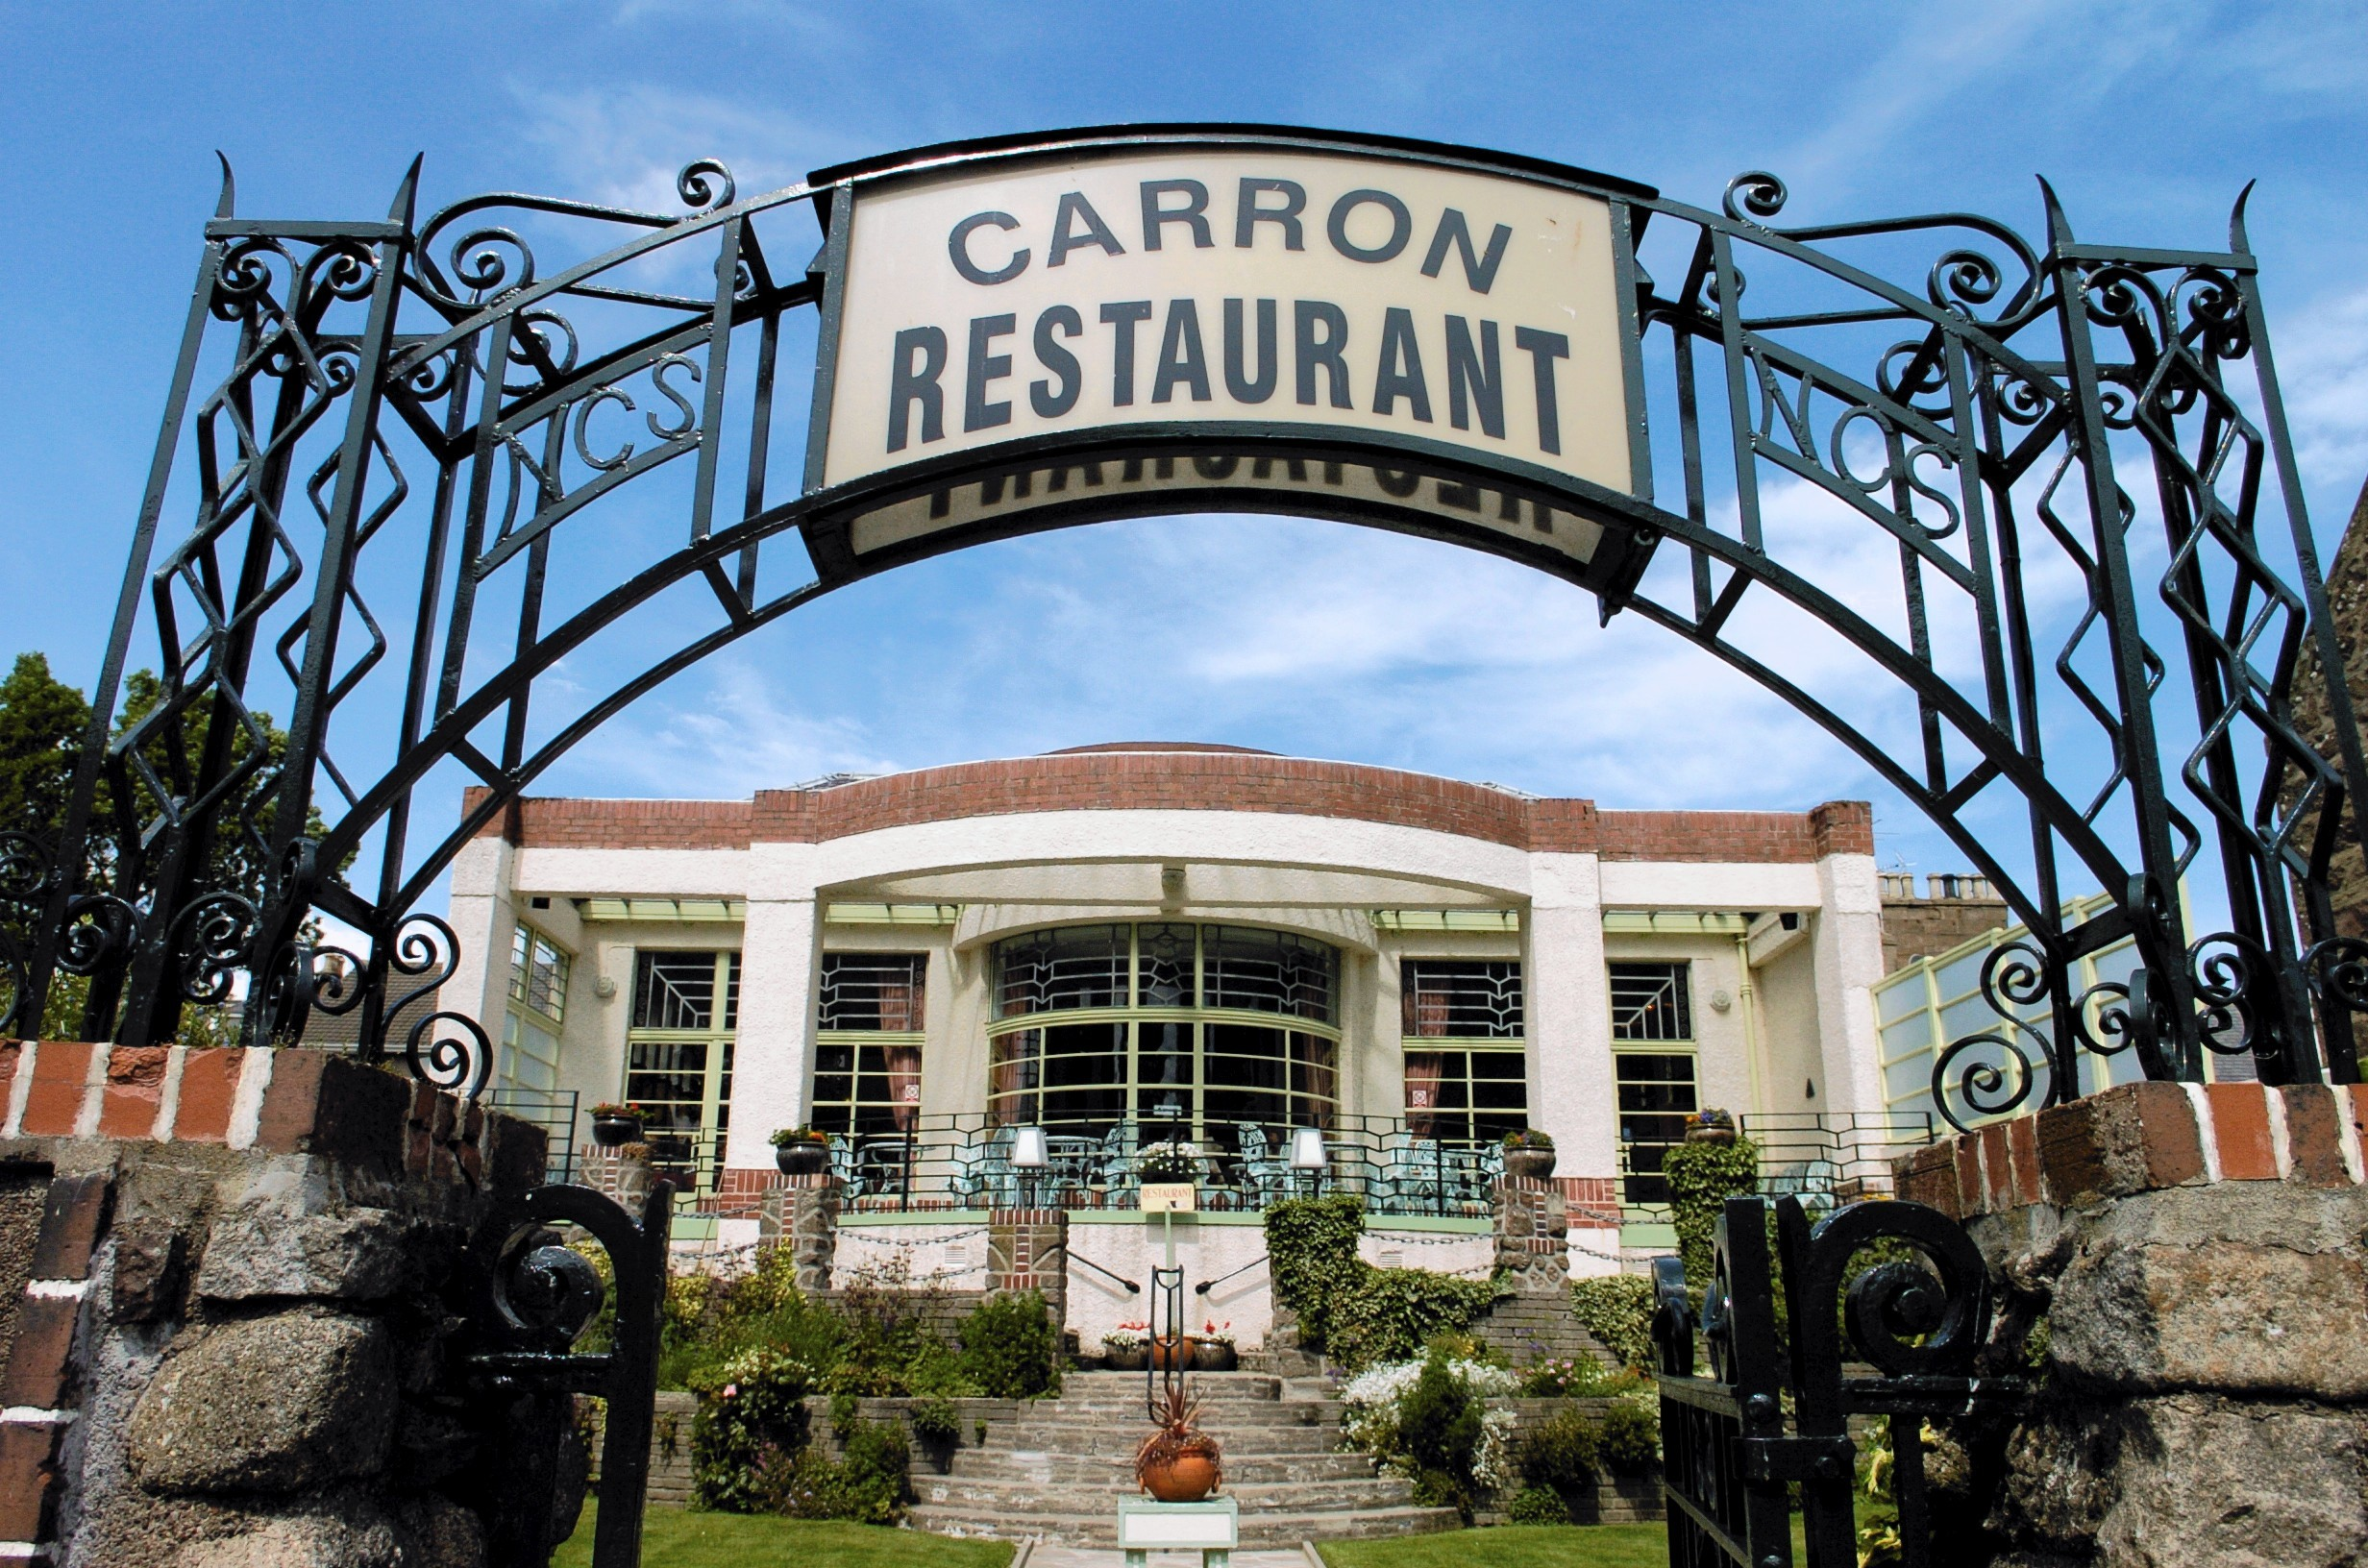 The well-known art deco Carron Restaurant closed last year.